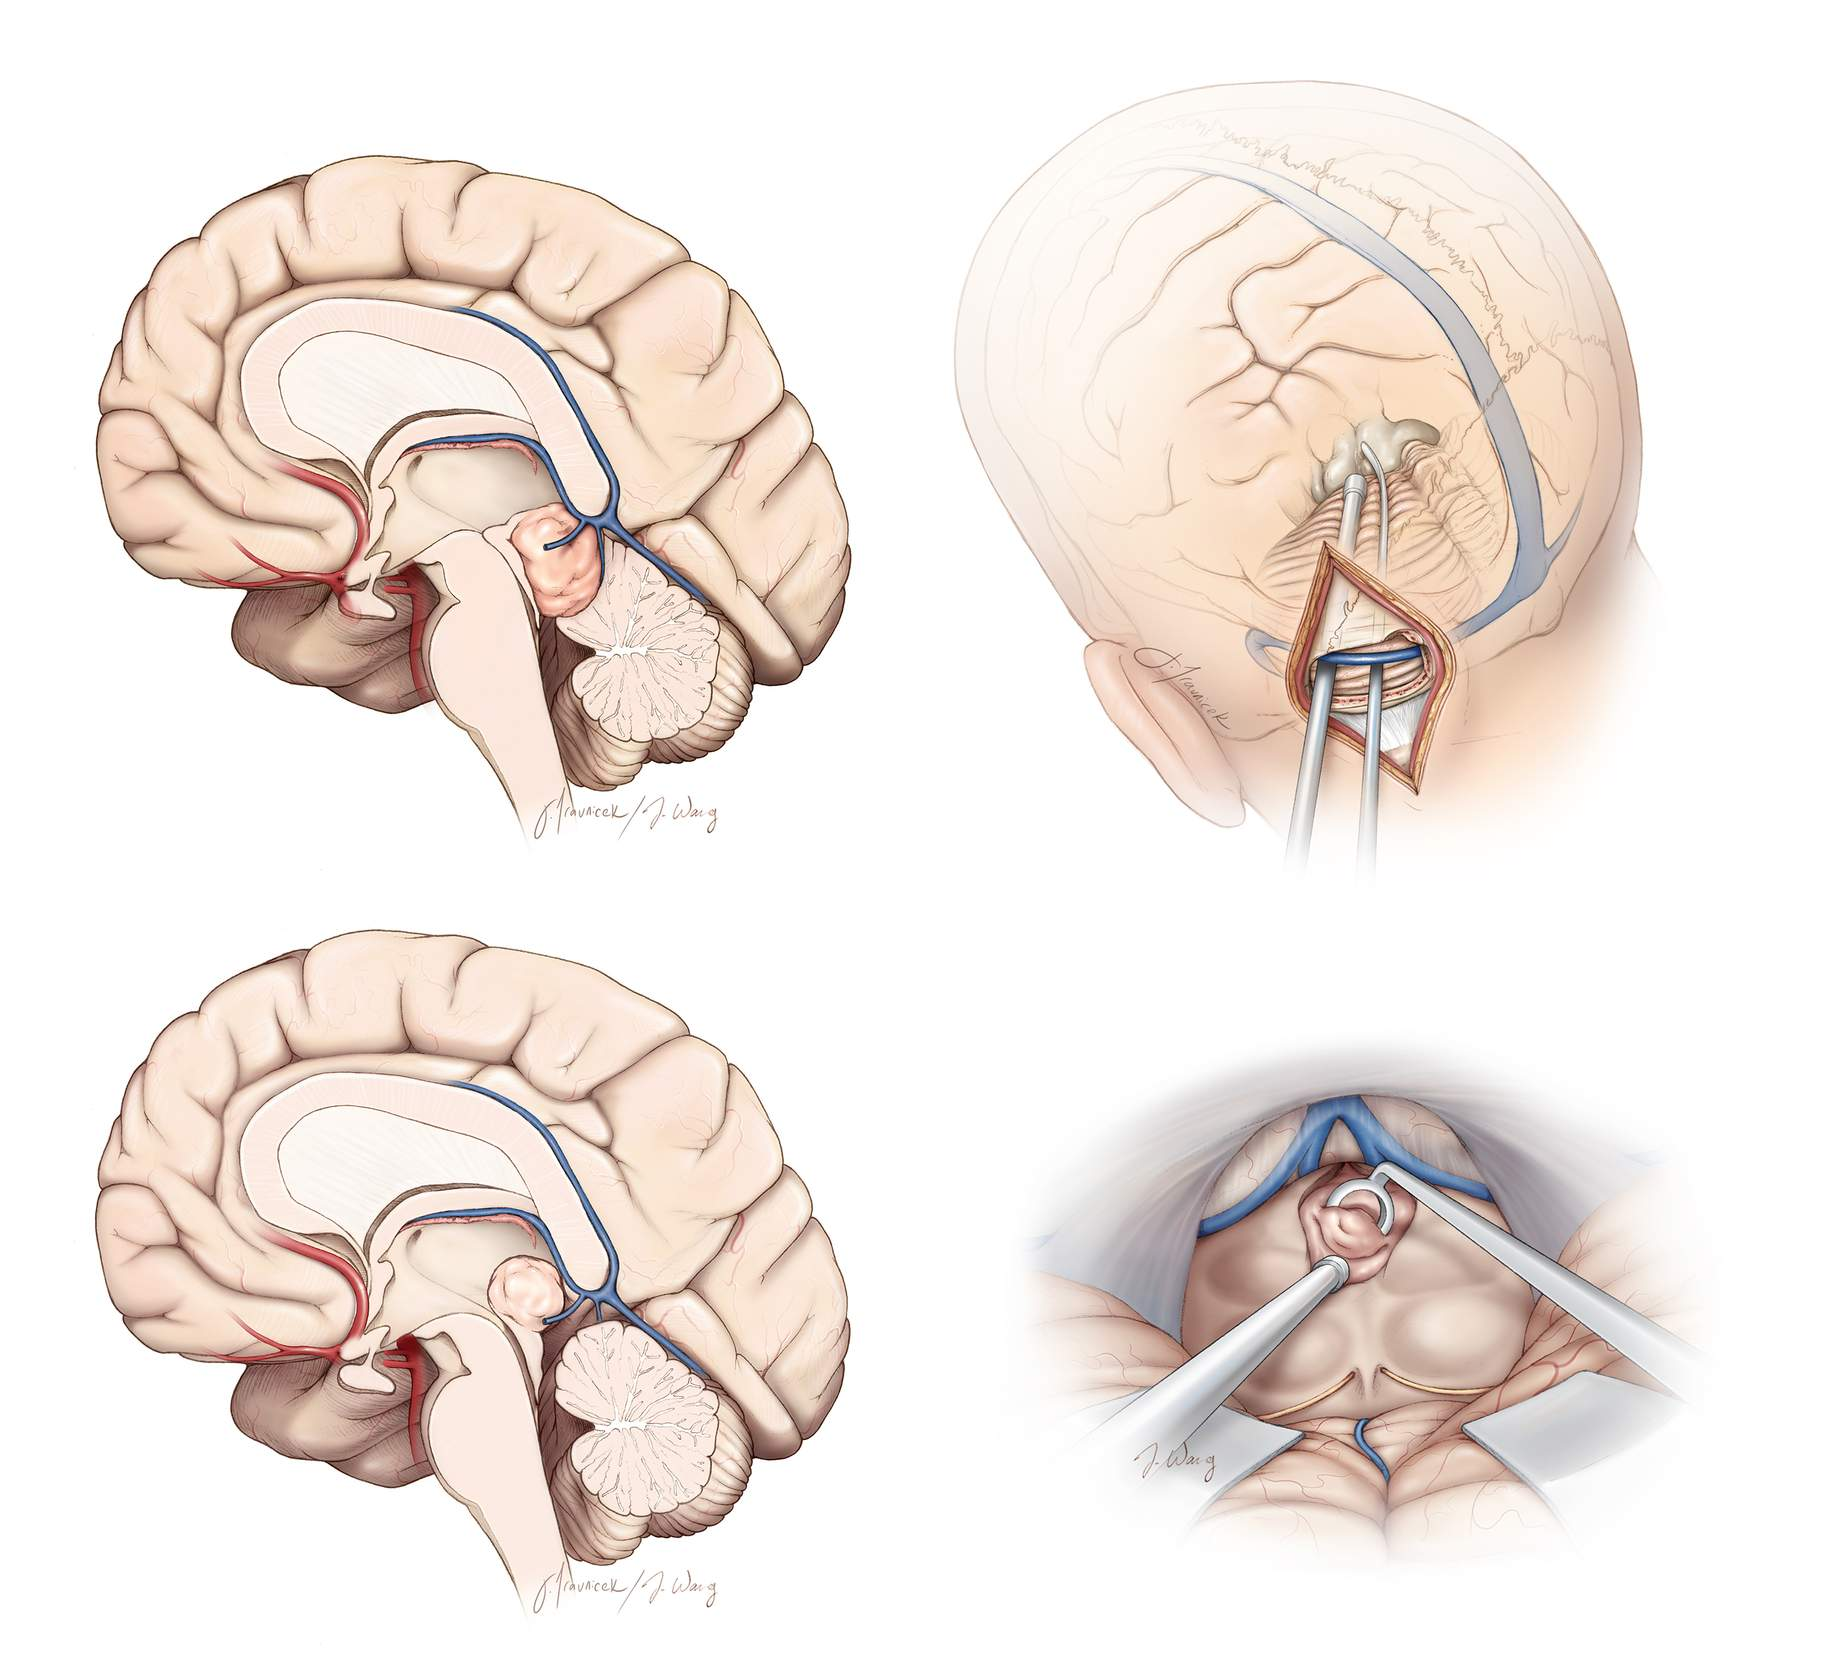 Figure 1: The paramedian supracerebellar approach has numerous advantages over the midline approach: 1) the craniotomy does not place the frequently more dominant right transverse sinus and torcula at risk and is less invasive, 2) only one cerebellar hemisphere is manipulated, 3) the vermian bridging veins are often protected, and 4) the lower slope of the lateral cerebellum provides a more inferior trajectory to the inferior pole of the tumor. Repeat surgery may be performed through the intact contralateral supracerebellar route. The paramedian or midline approach allows exposure of posterior third ventricular tumors (bottom images).